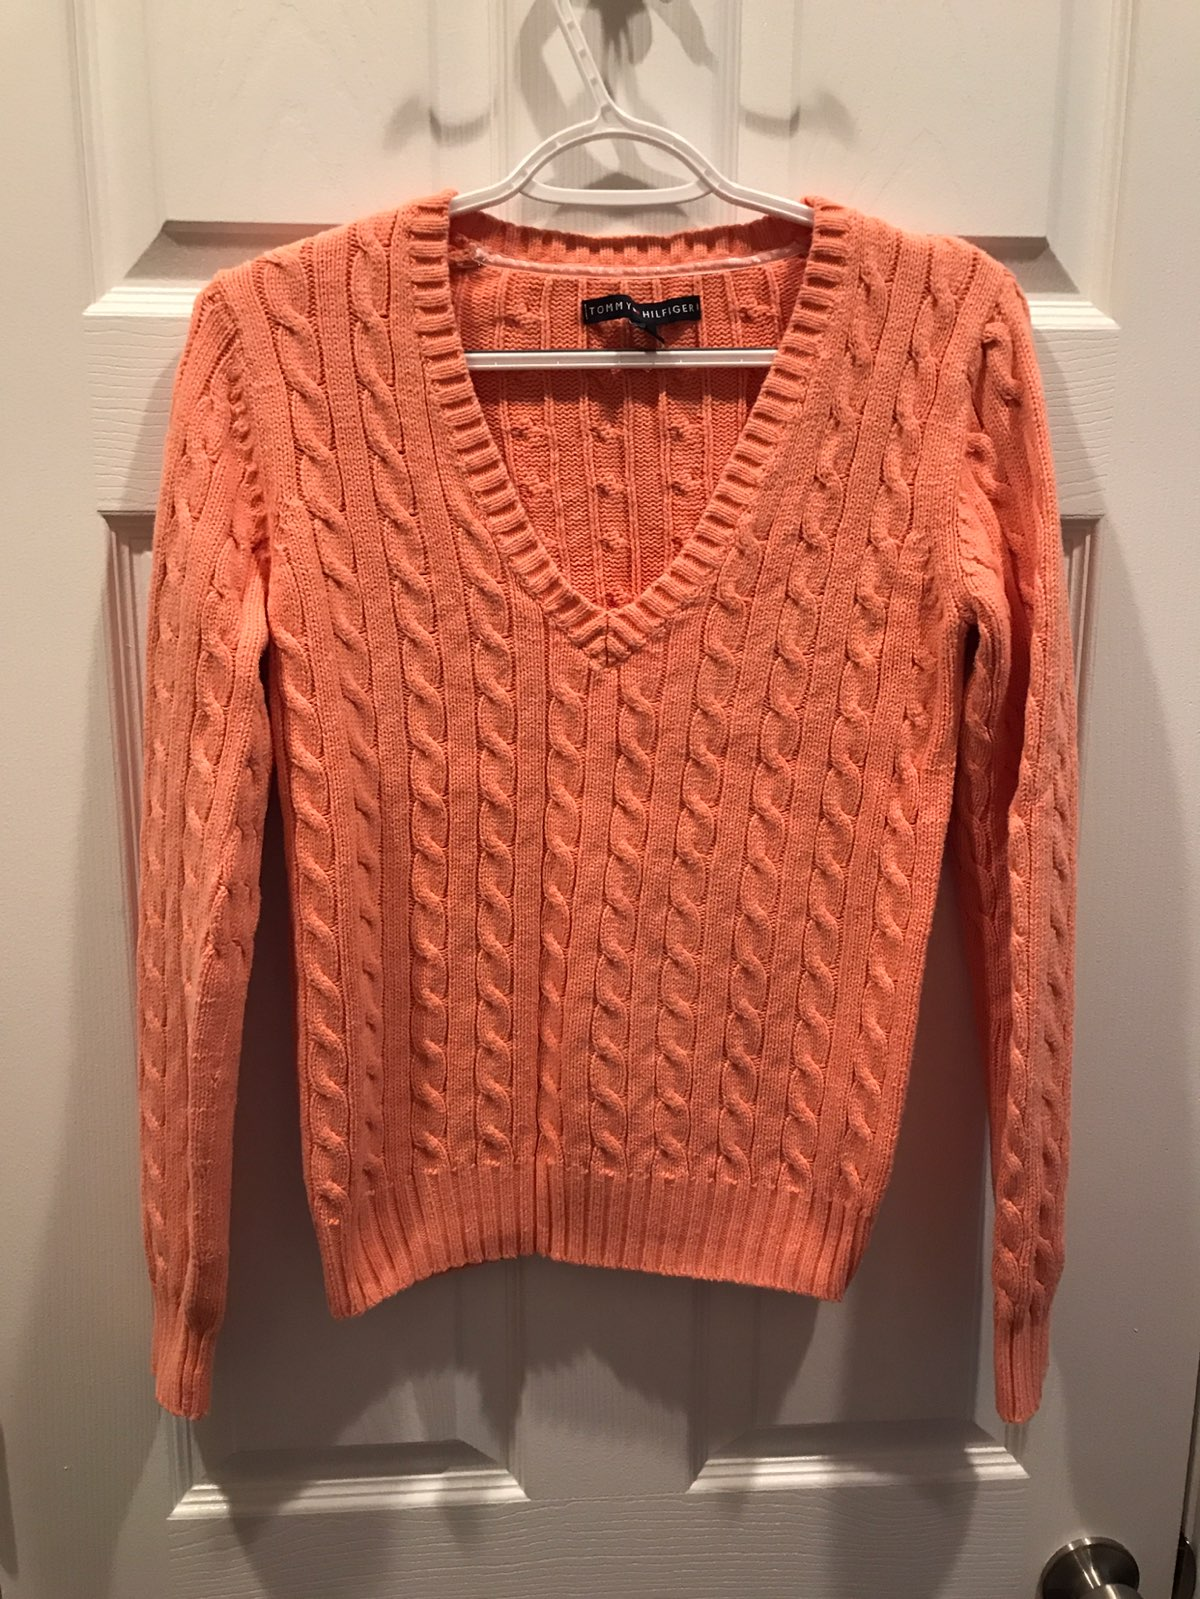 Tommy Hilfiger cable knit sweater - Mercari: BUY & SELL THINGS YOU ...